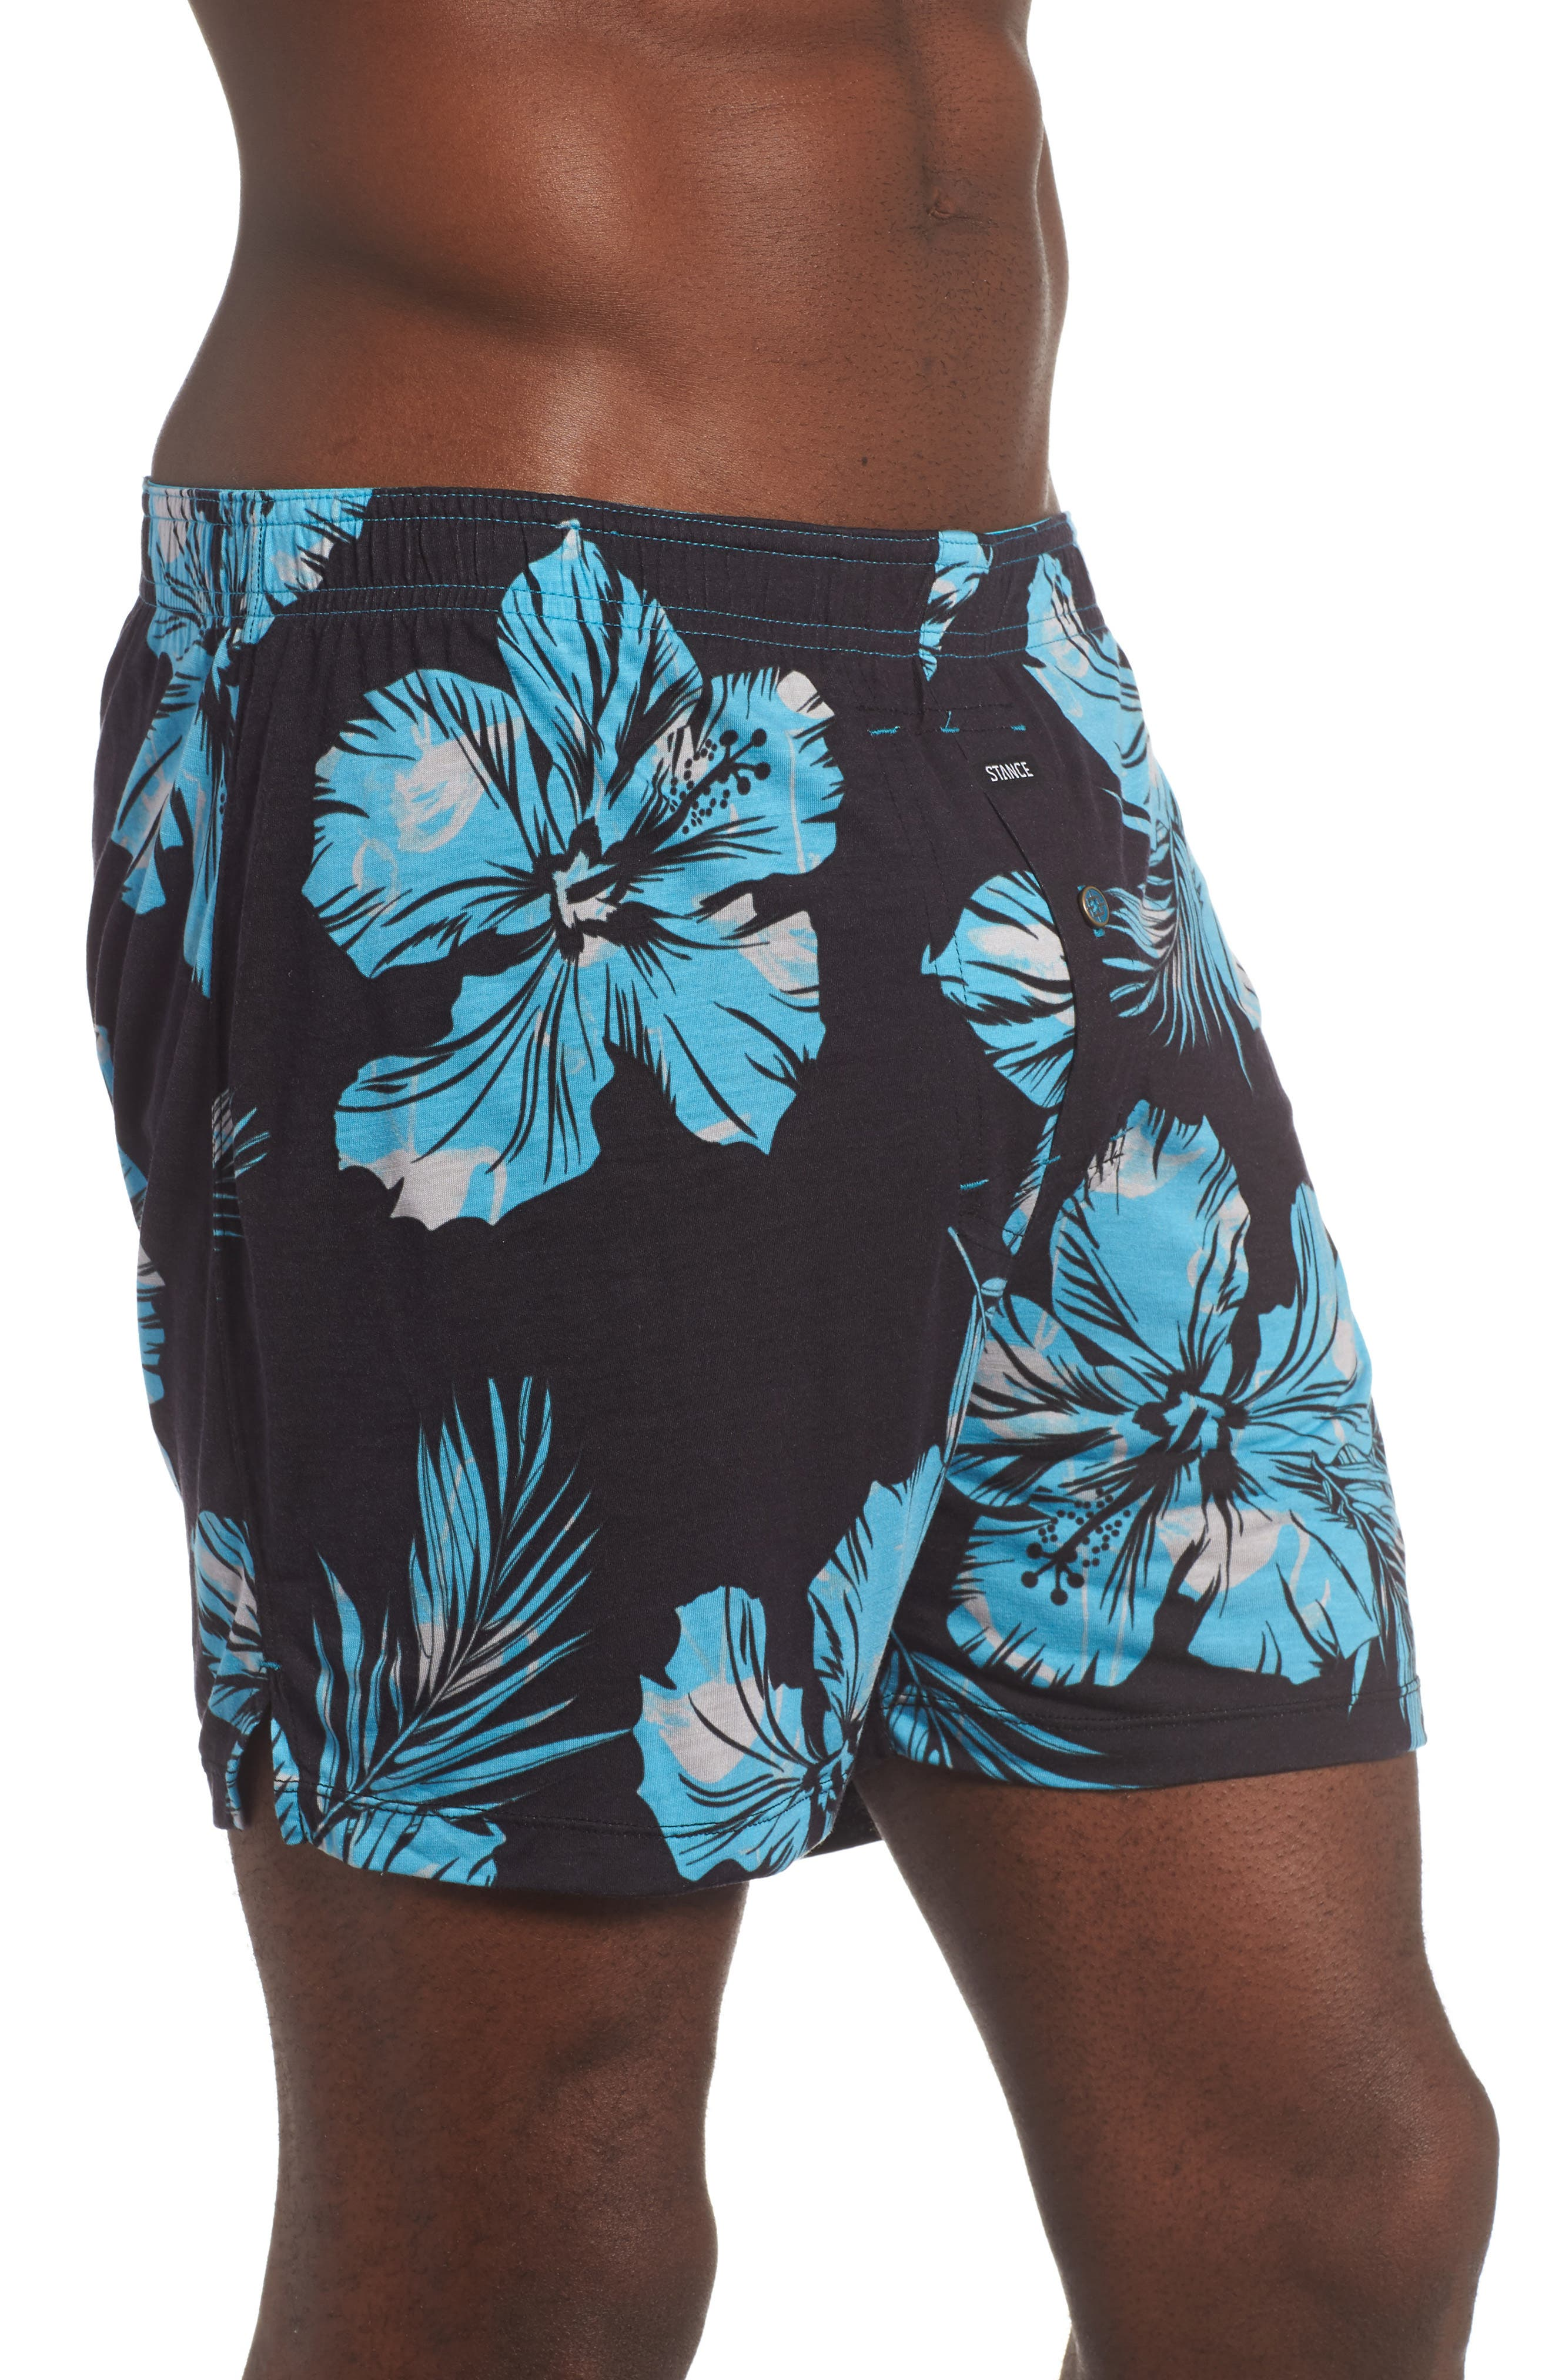 Mercato Flamingo Flowers Boxer Briefs,                             Alternate thumbnail 3, color,                             Blue